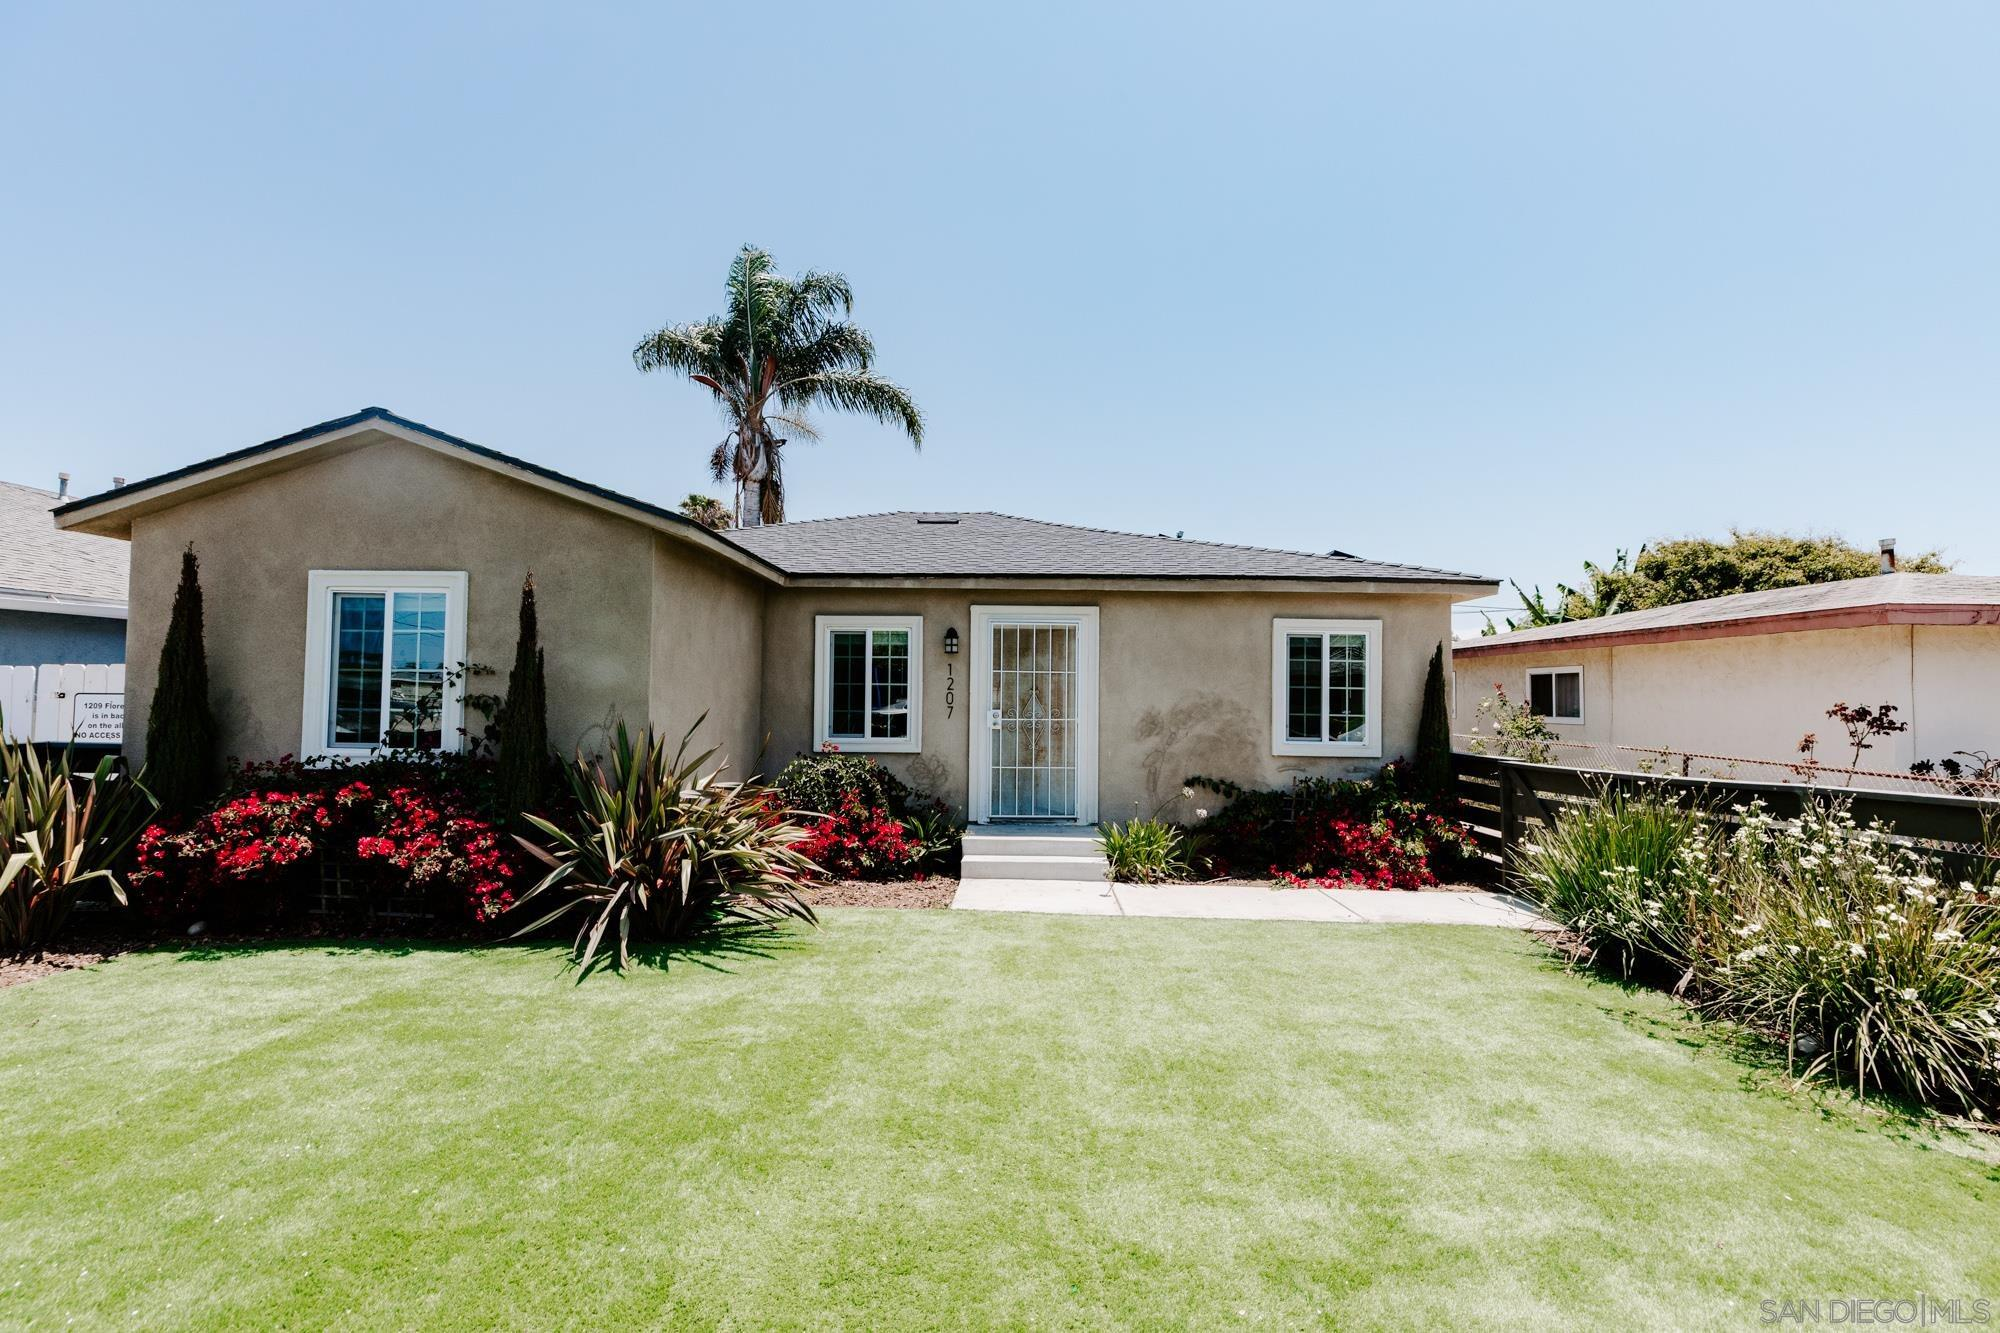 1207 Florence St, Imperial Beach, CA 91932